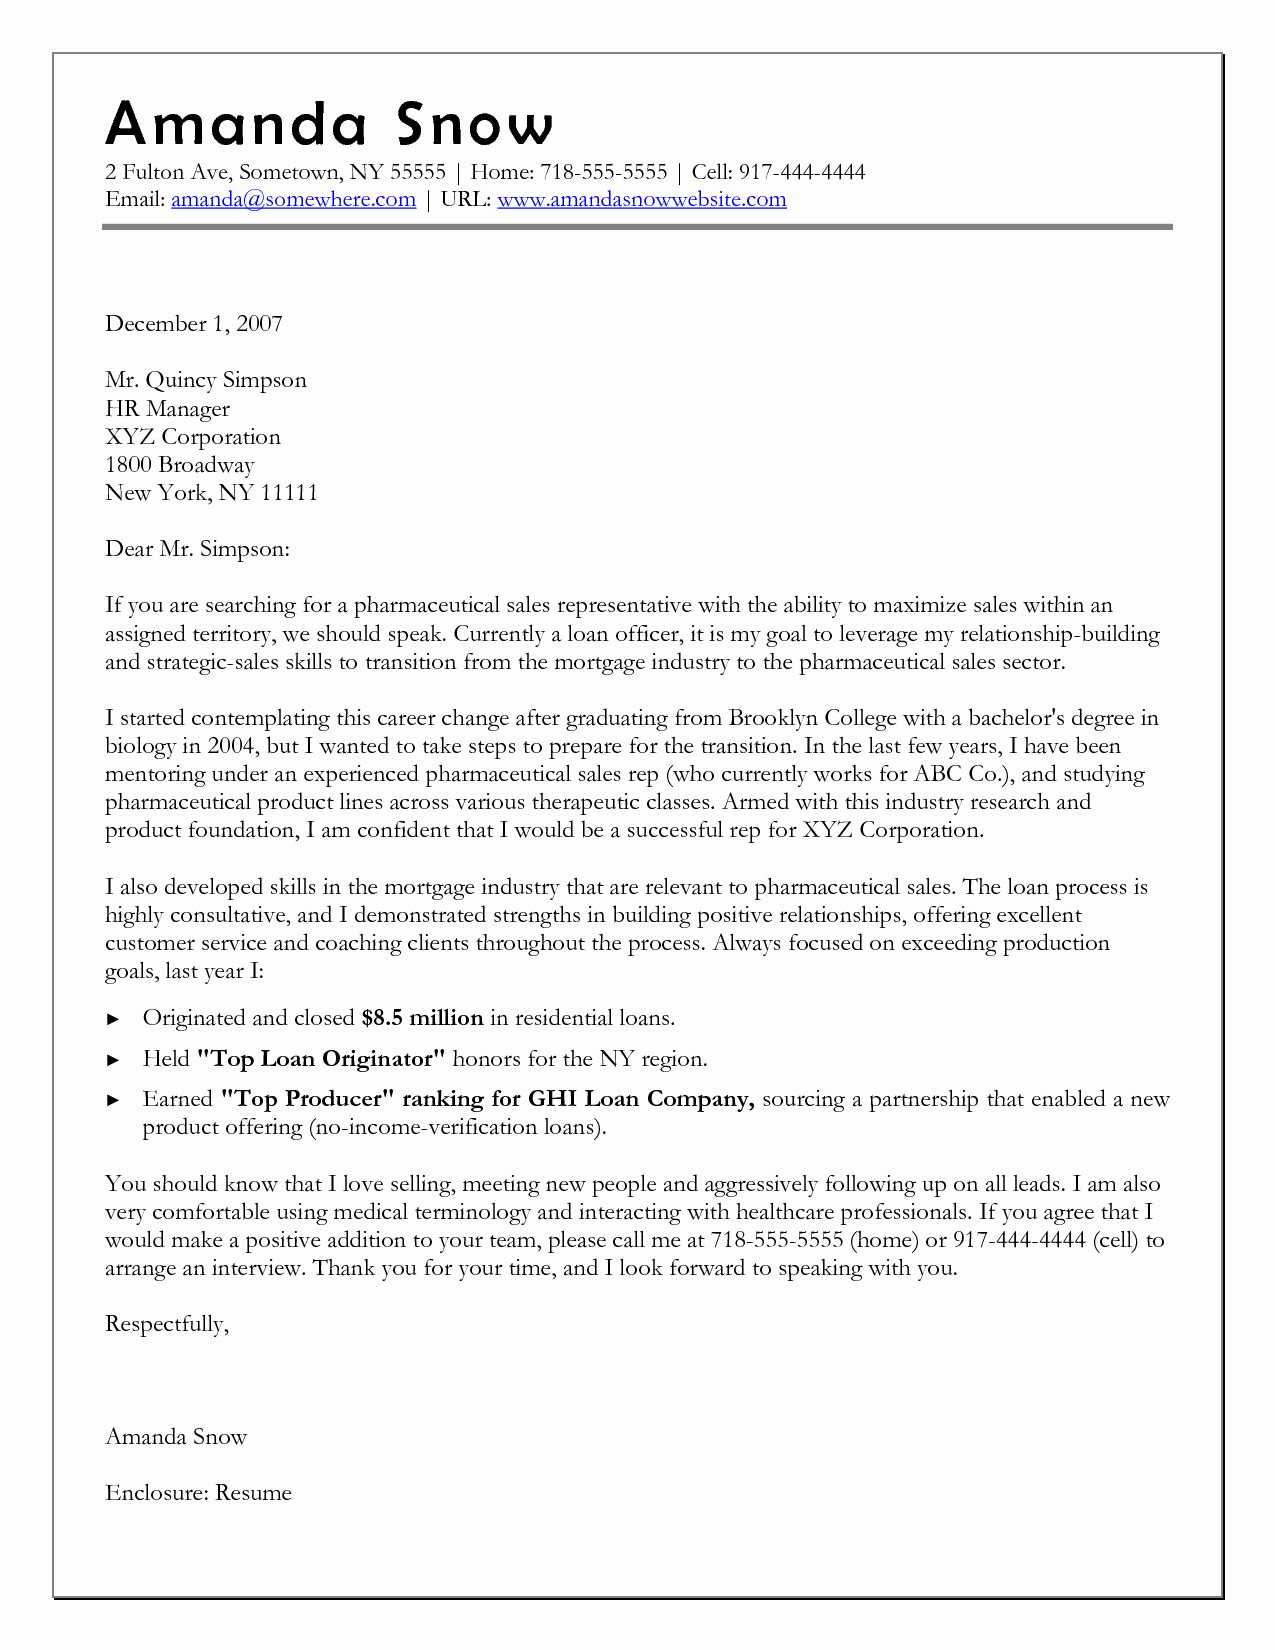 Change Of Career Cover Letter Elegant Career Change Cover Letter